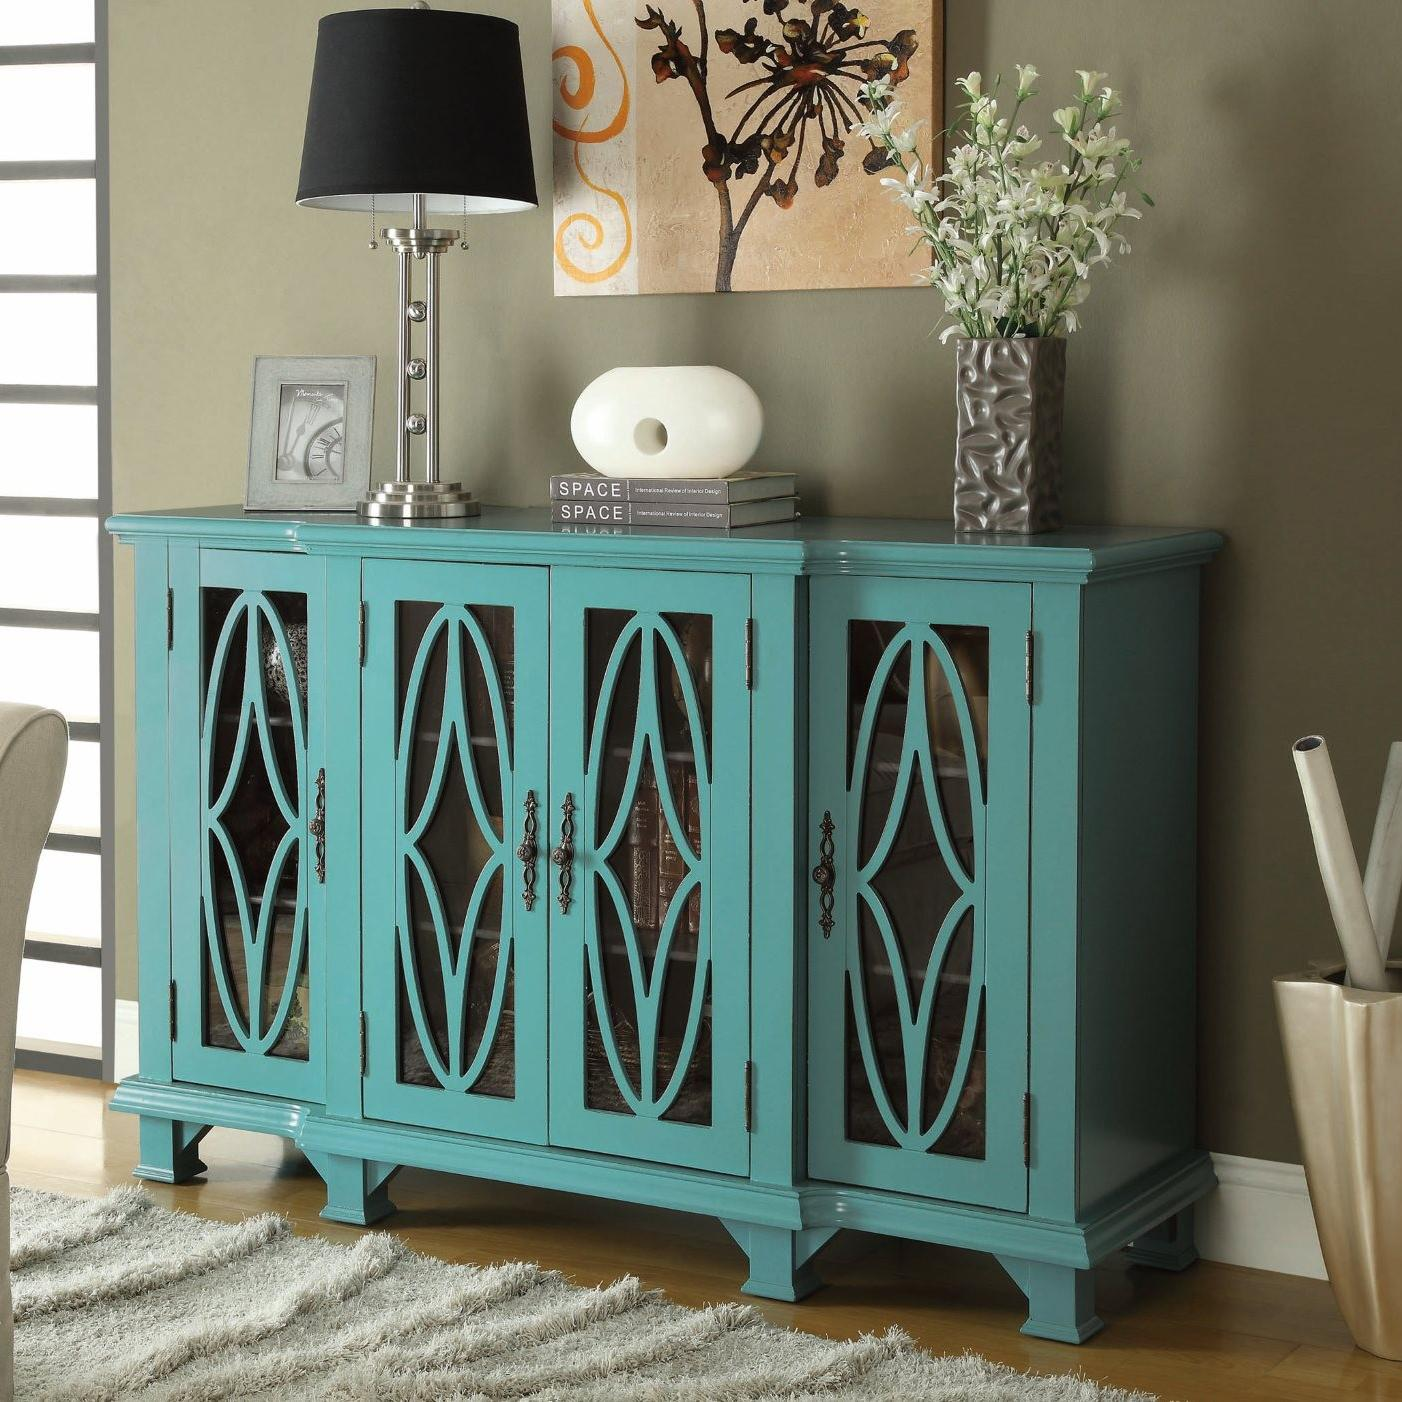 coaster accent cabinets large teal cabinet with glass doors products color furniture storage wood and steel end table extra thin console yellow windmill clock outdoor grey wall